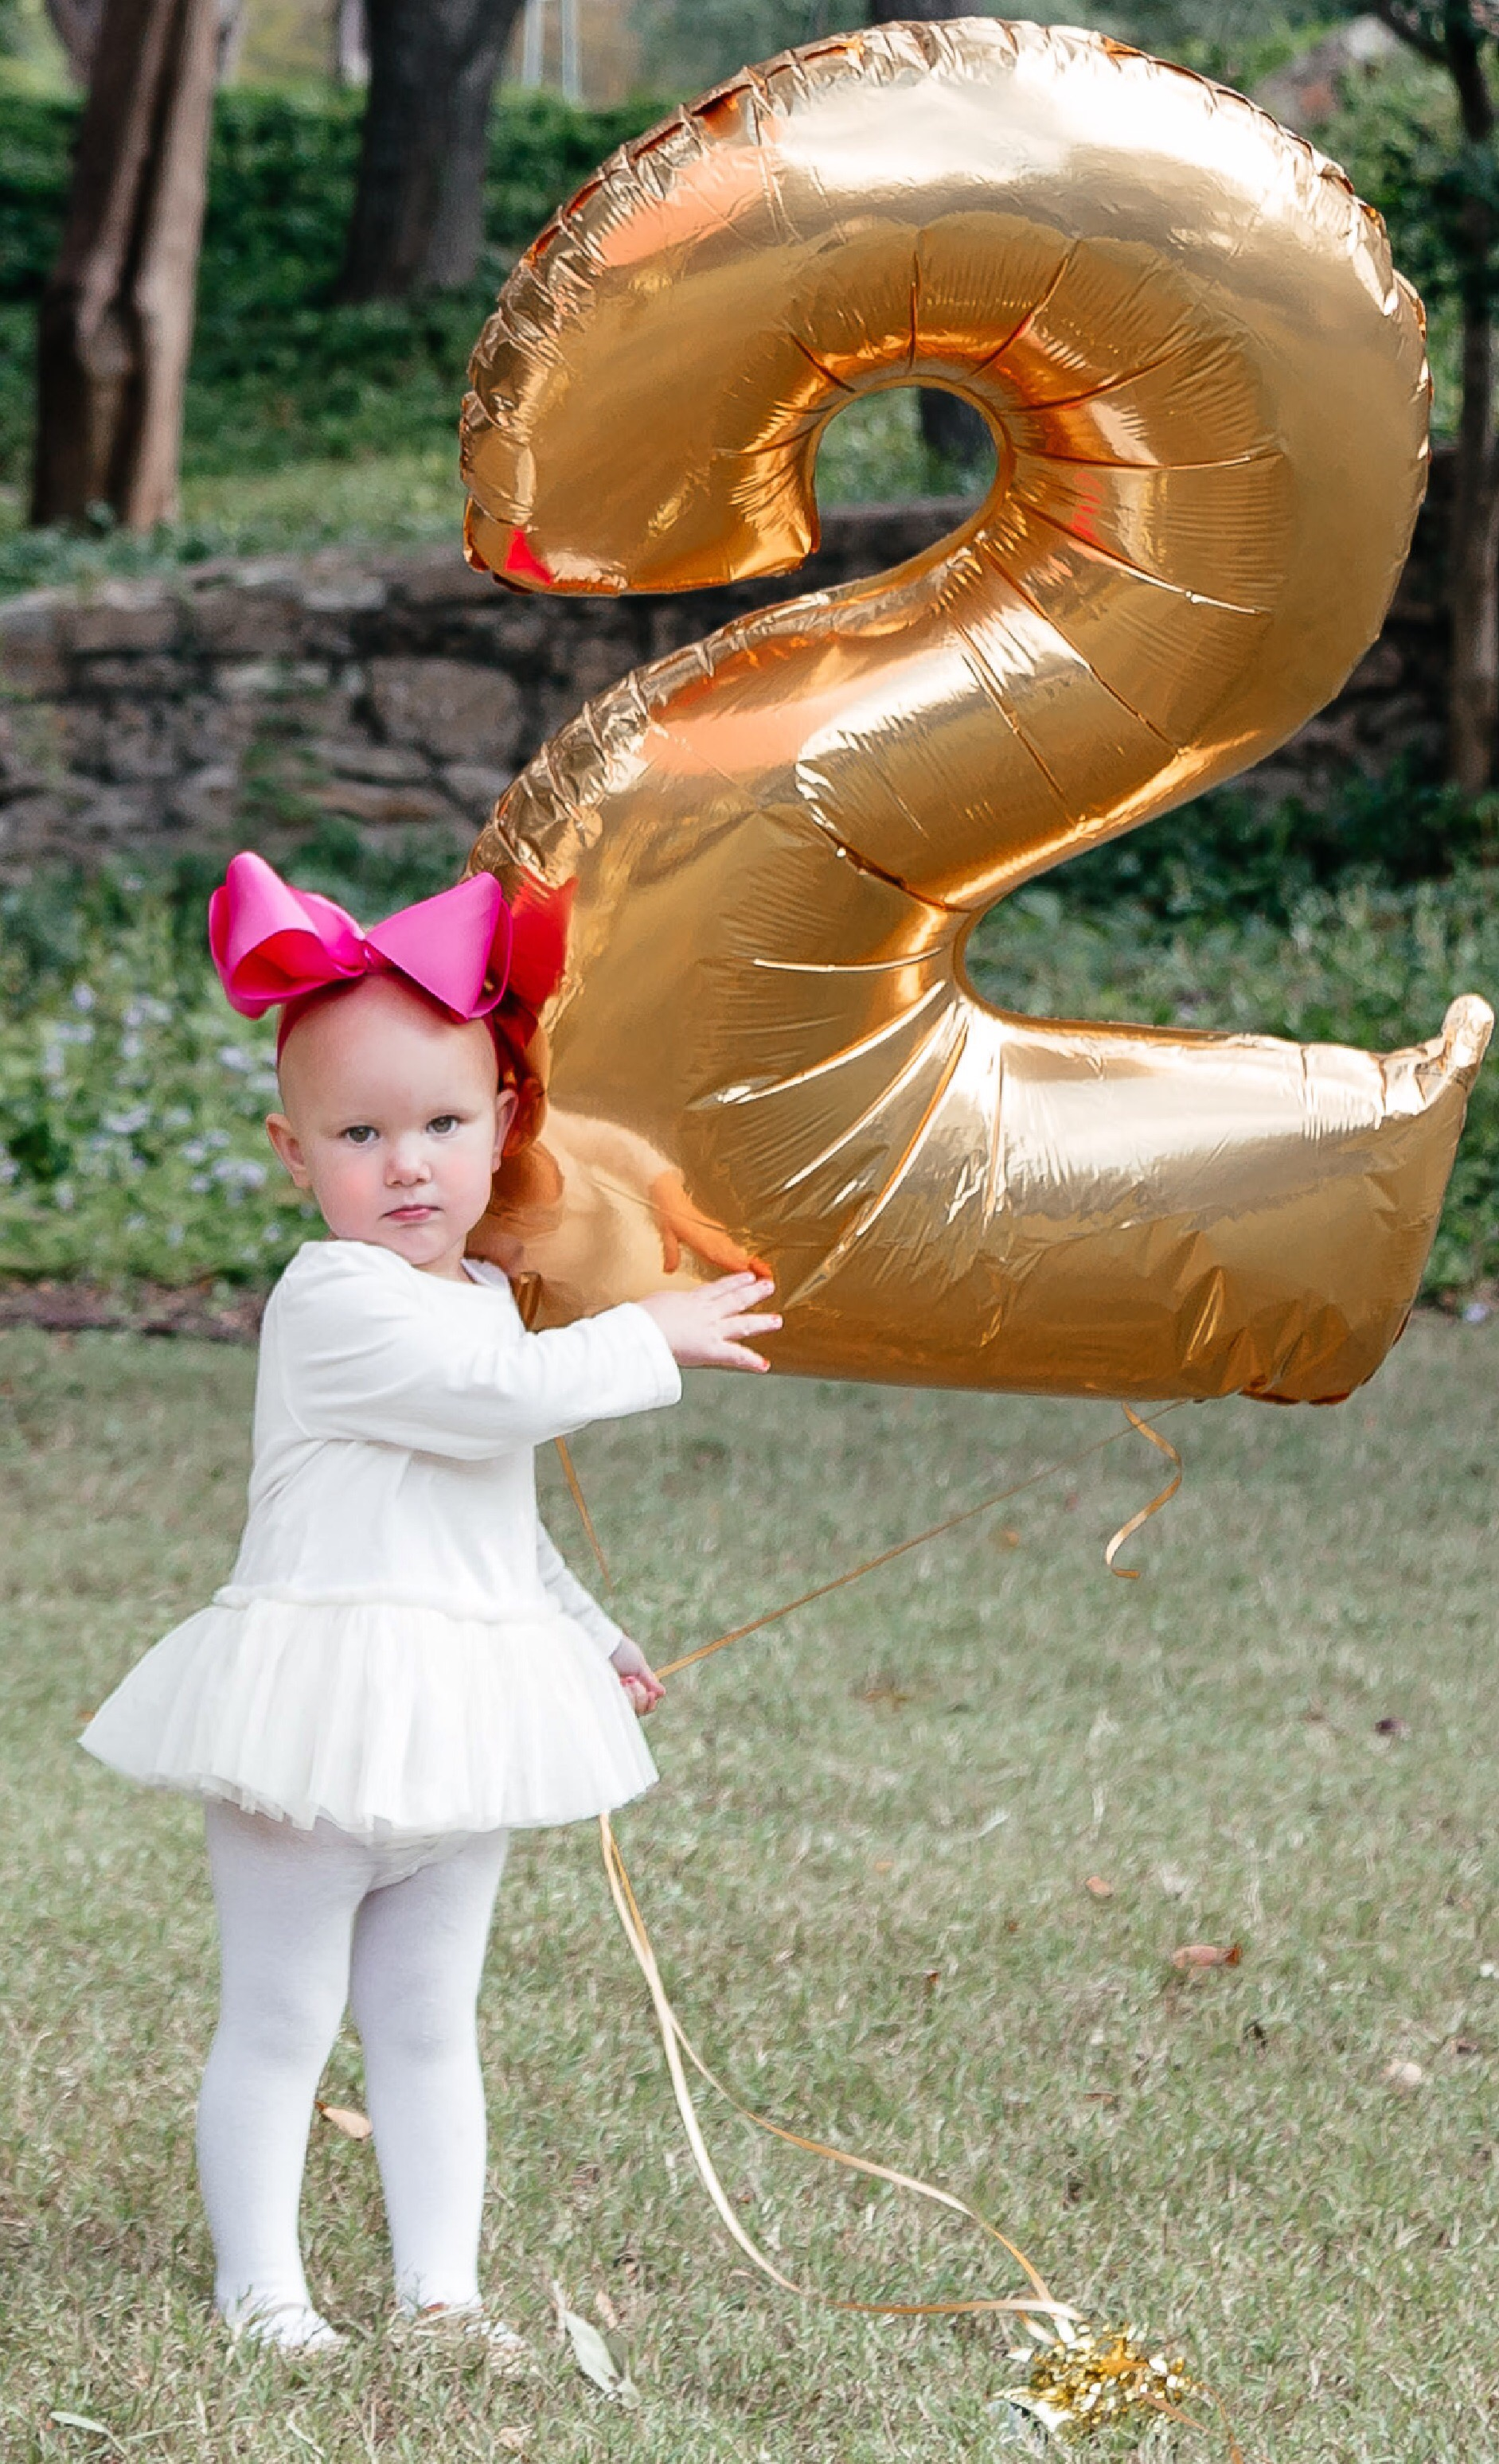 Angelina Bowman, wearing BABY GAP, celebrating 2nd birthday in cream tutu, tights and gold Mary Jane shoes